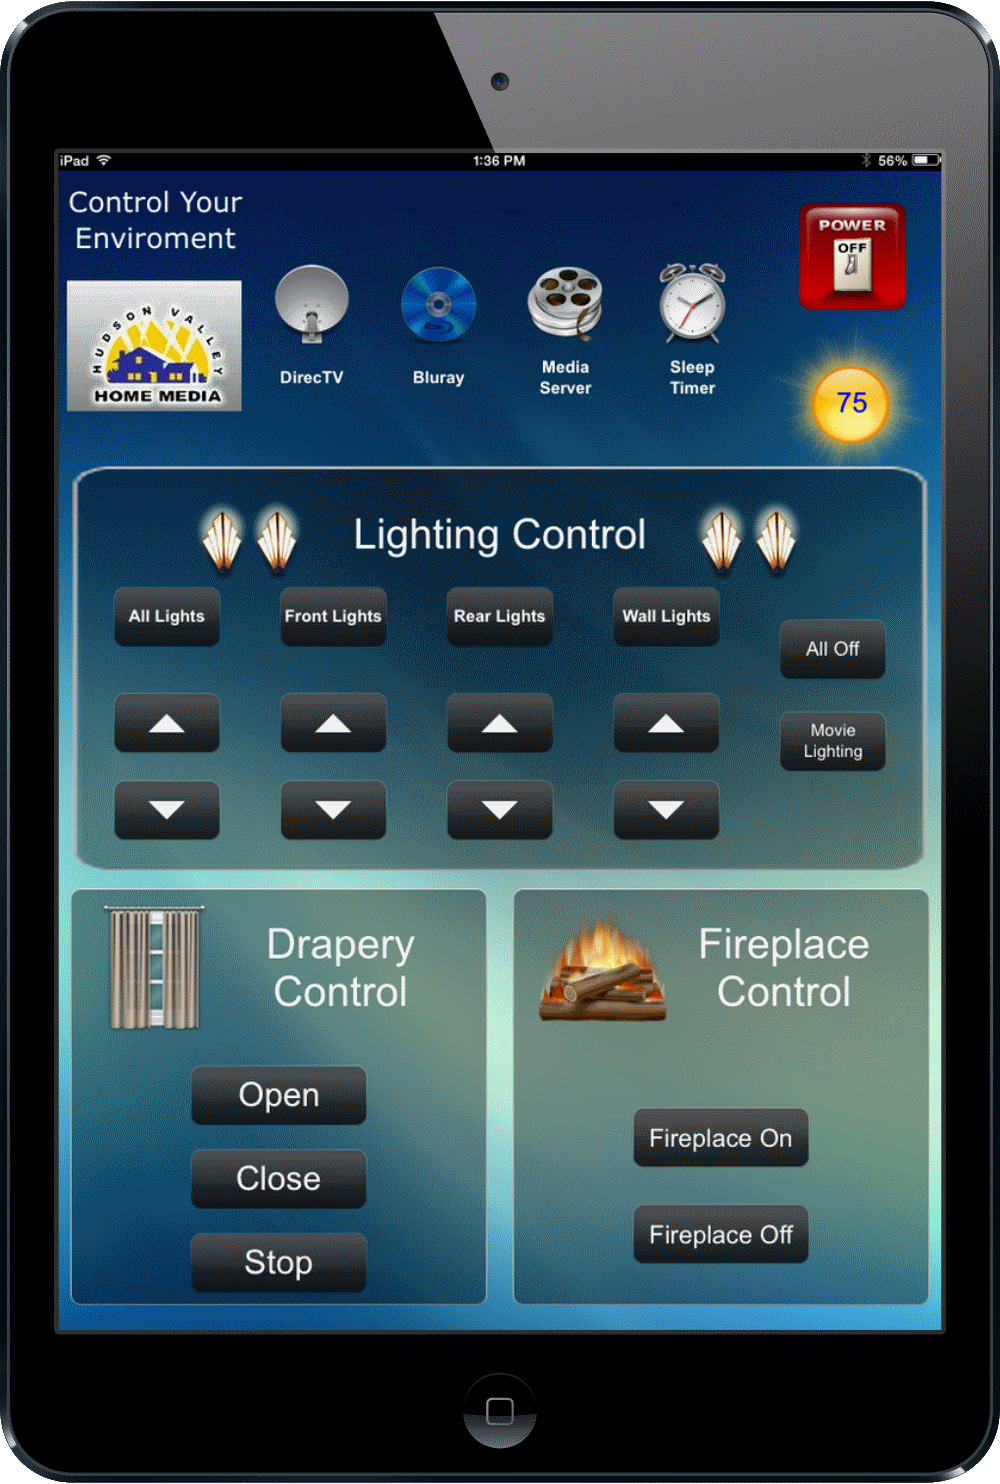 Ipad Mini Remote - Drapes - Fire Place - Outdoor and Indoor Lighting Unversal Remote - Hudsone Valley Home Media - Nyack, NY.png